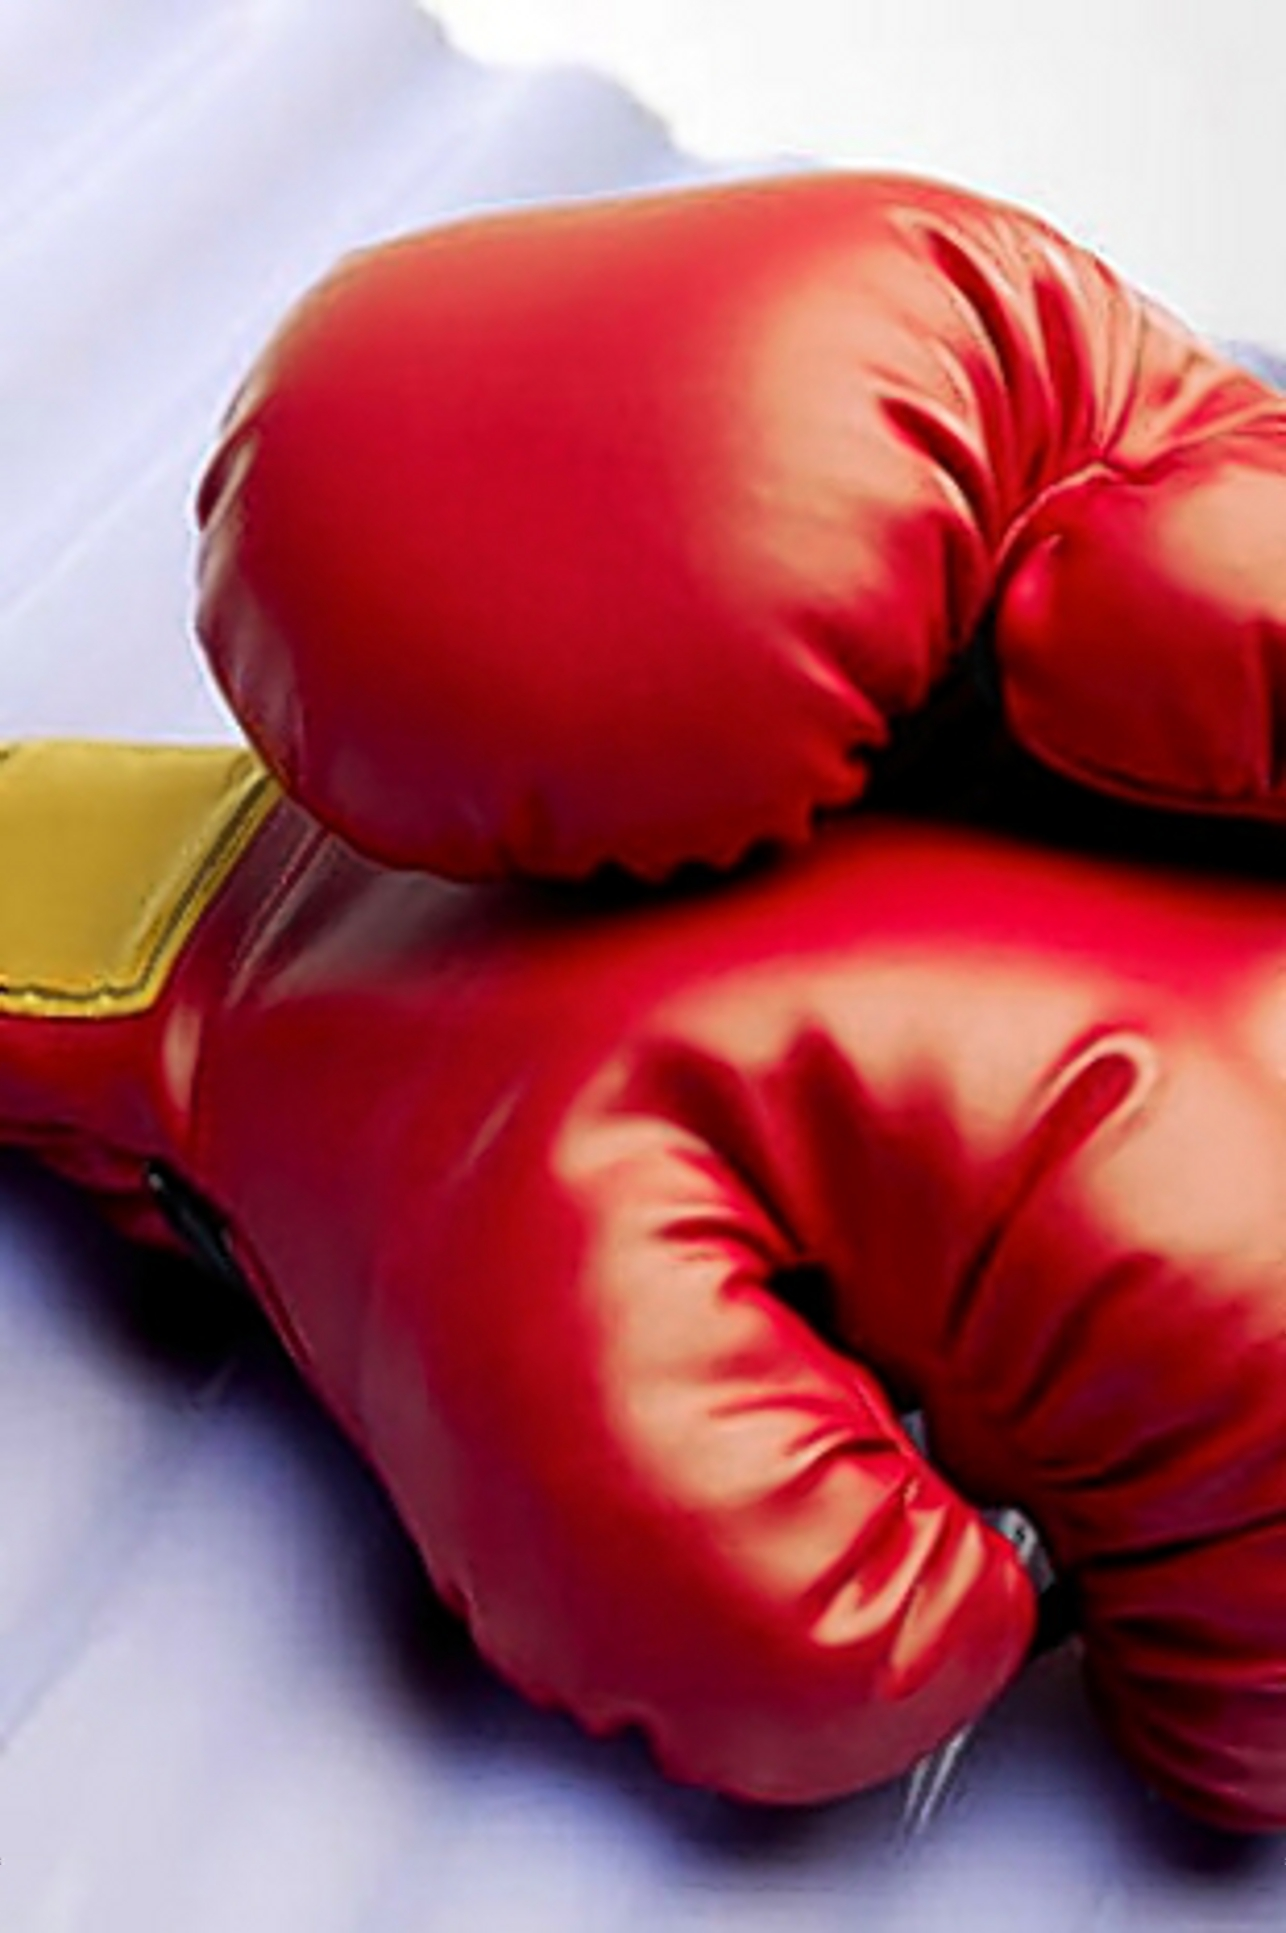 Finchley fighter Chaima suffers final defeat